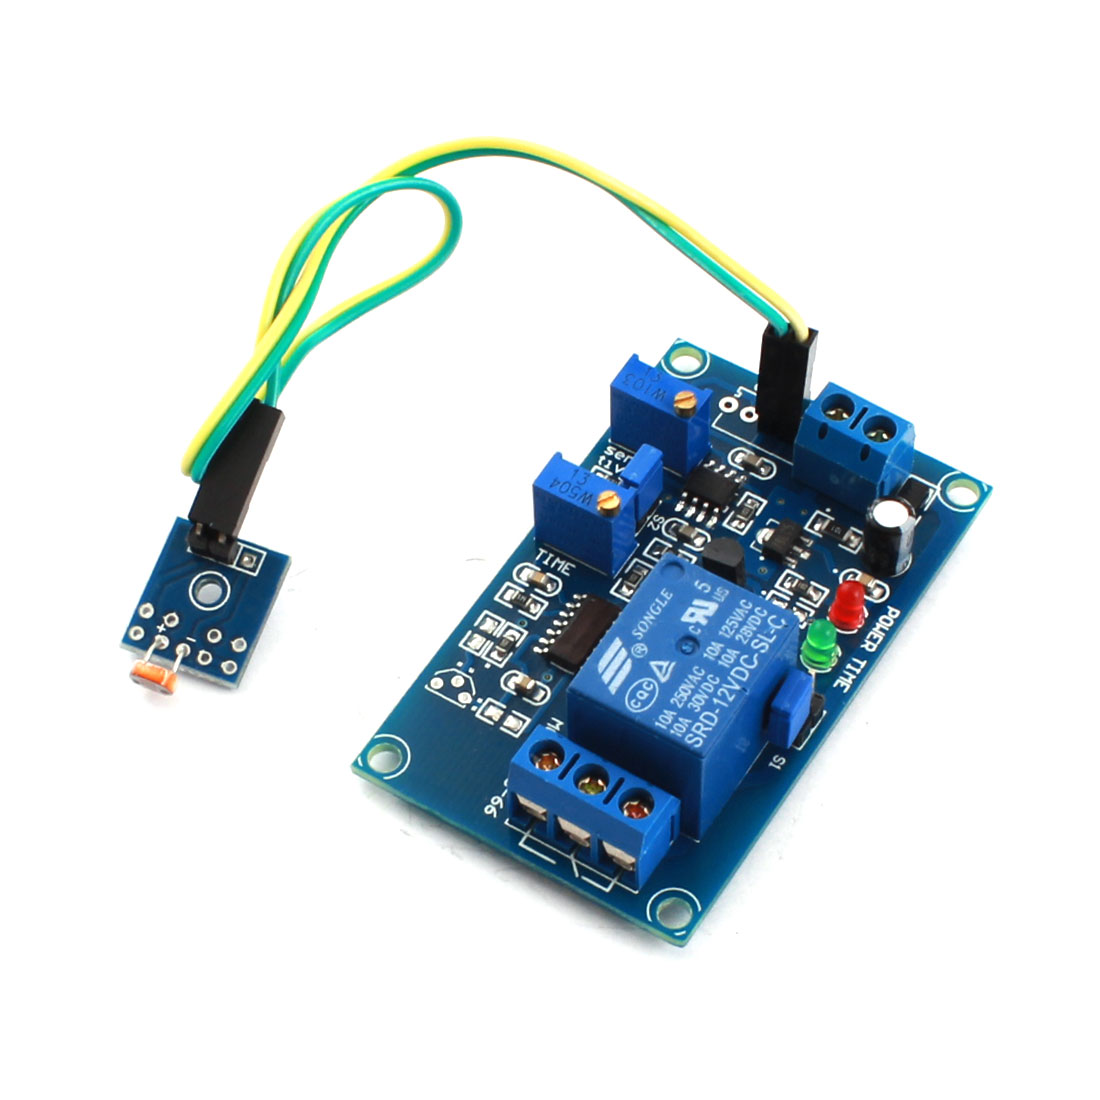 DC12V 1 Channel Light Operation Photovaristor Diode Time Delay PCB Board Relay Module